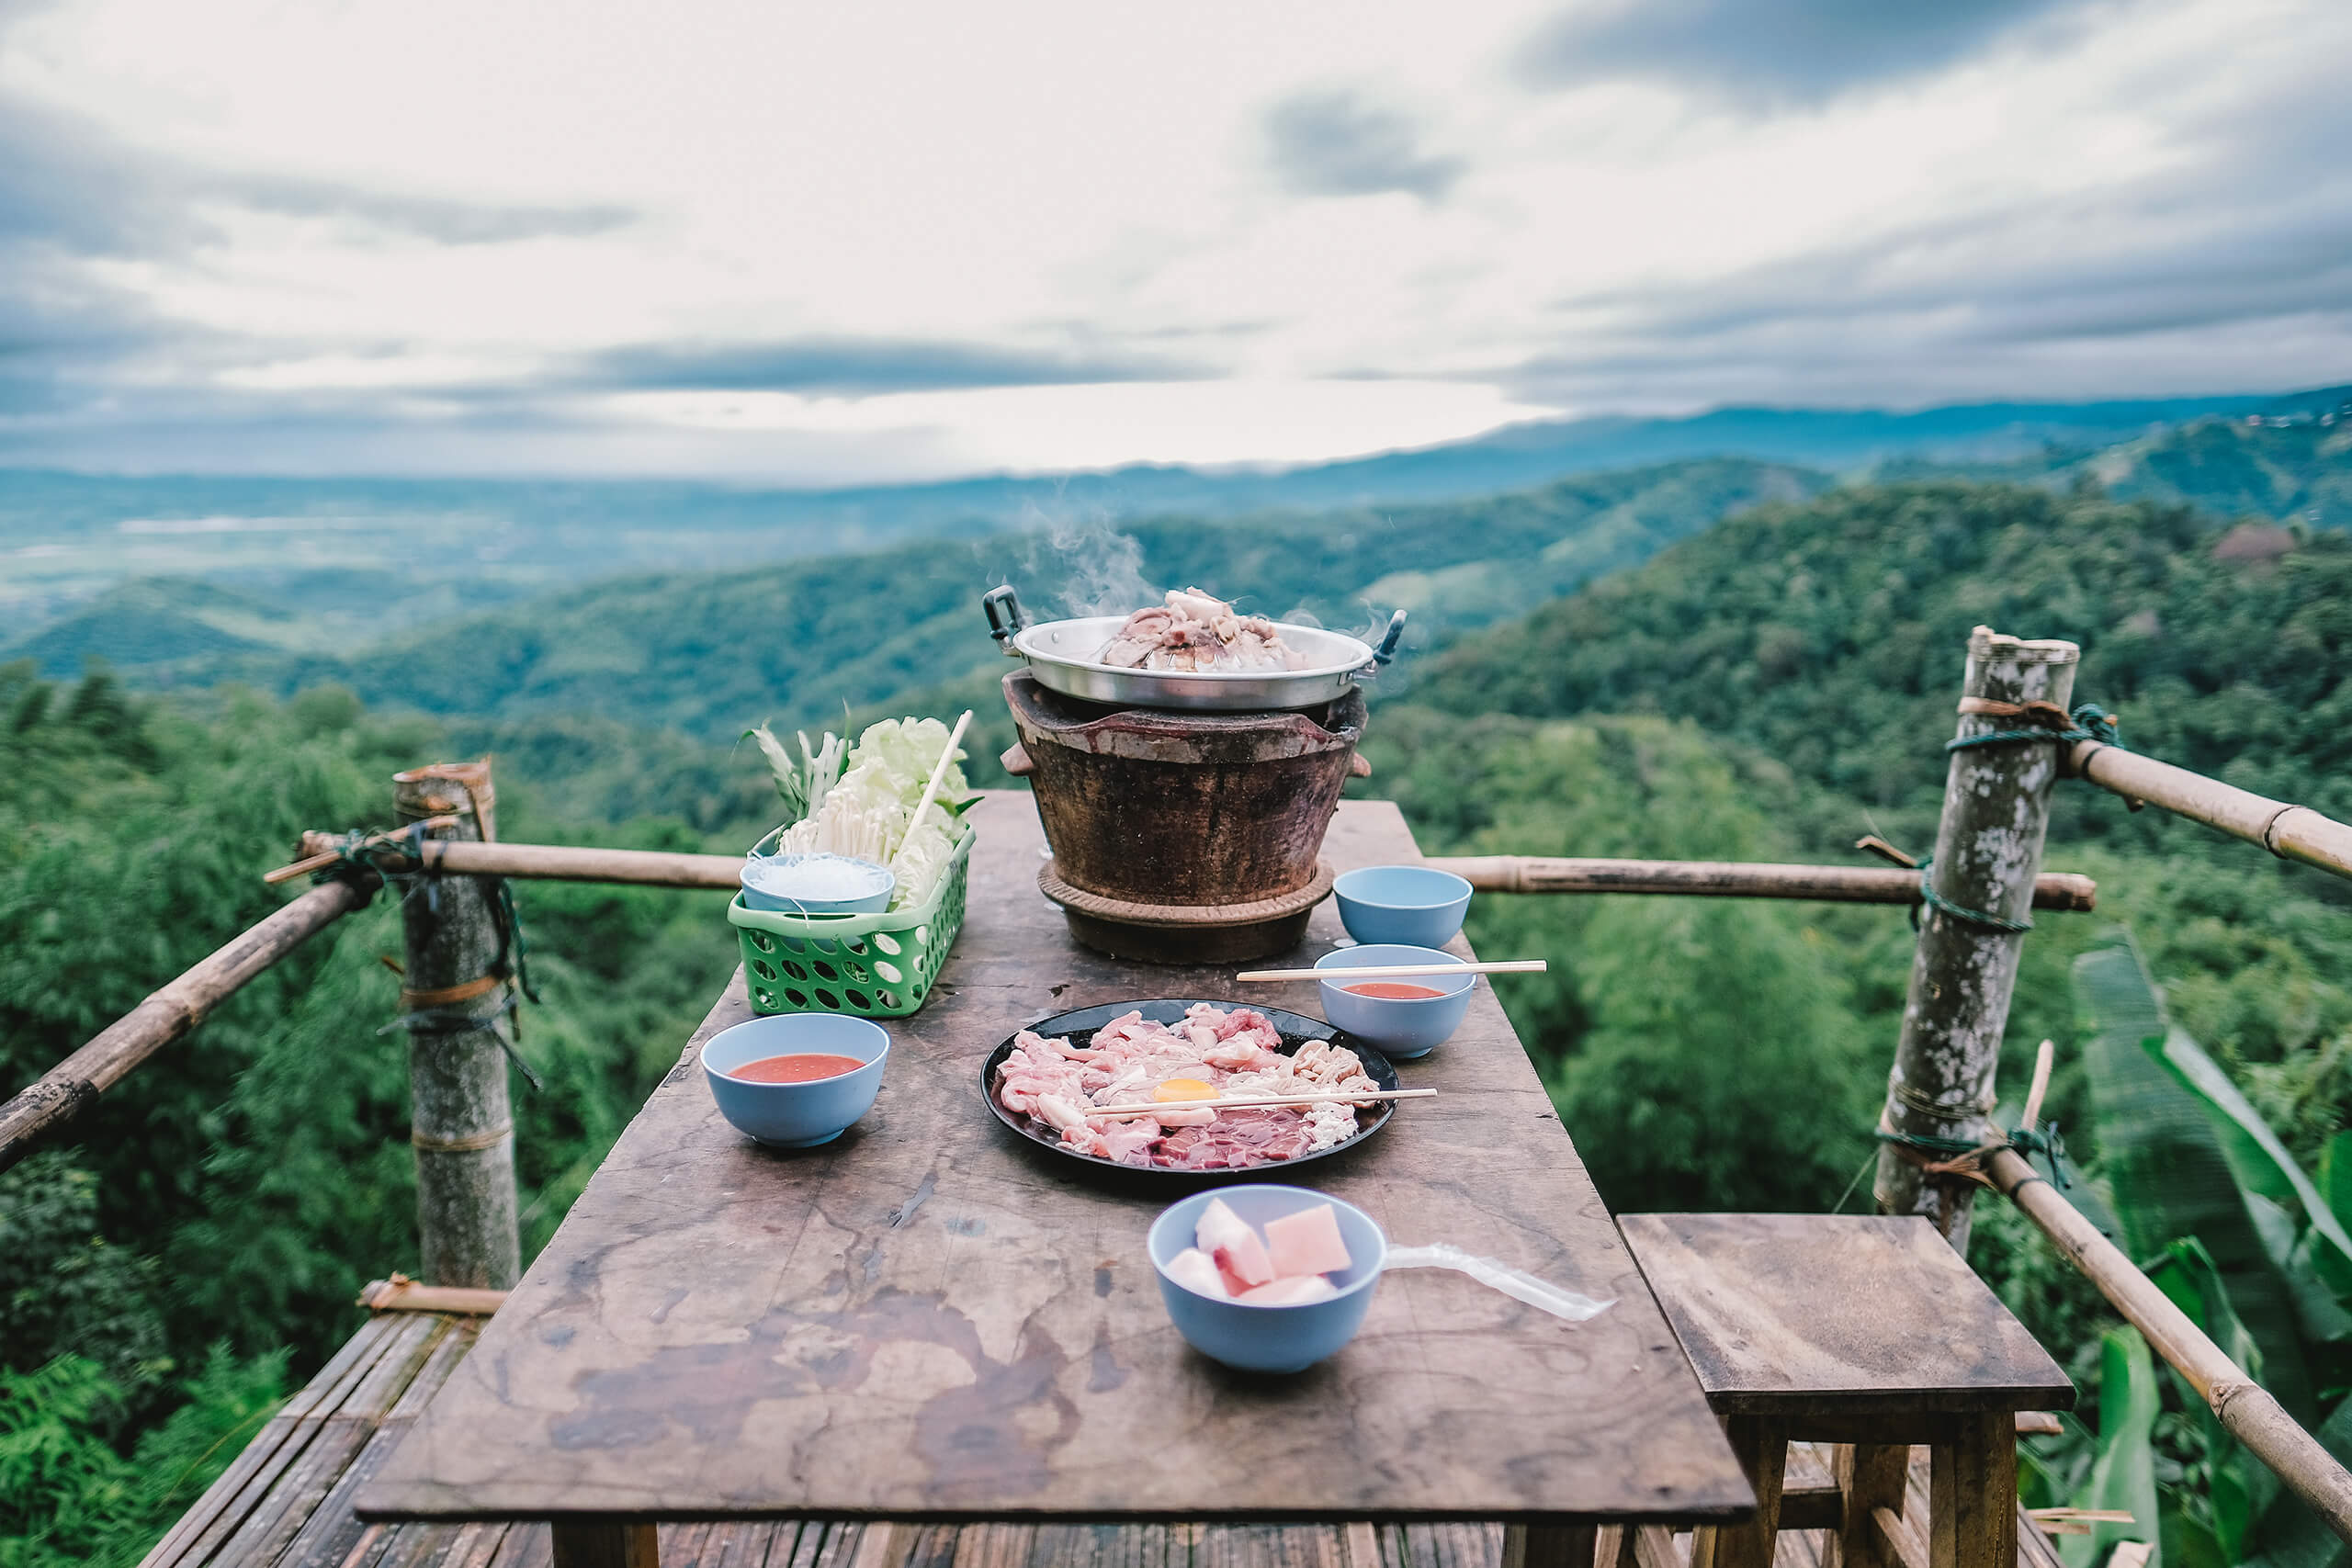 DISTANCED DINING: 5 'ulu' food places you definitely want to drive to